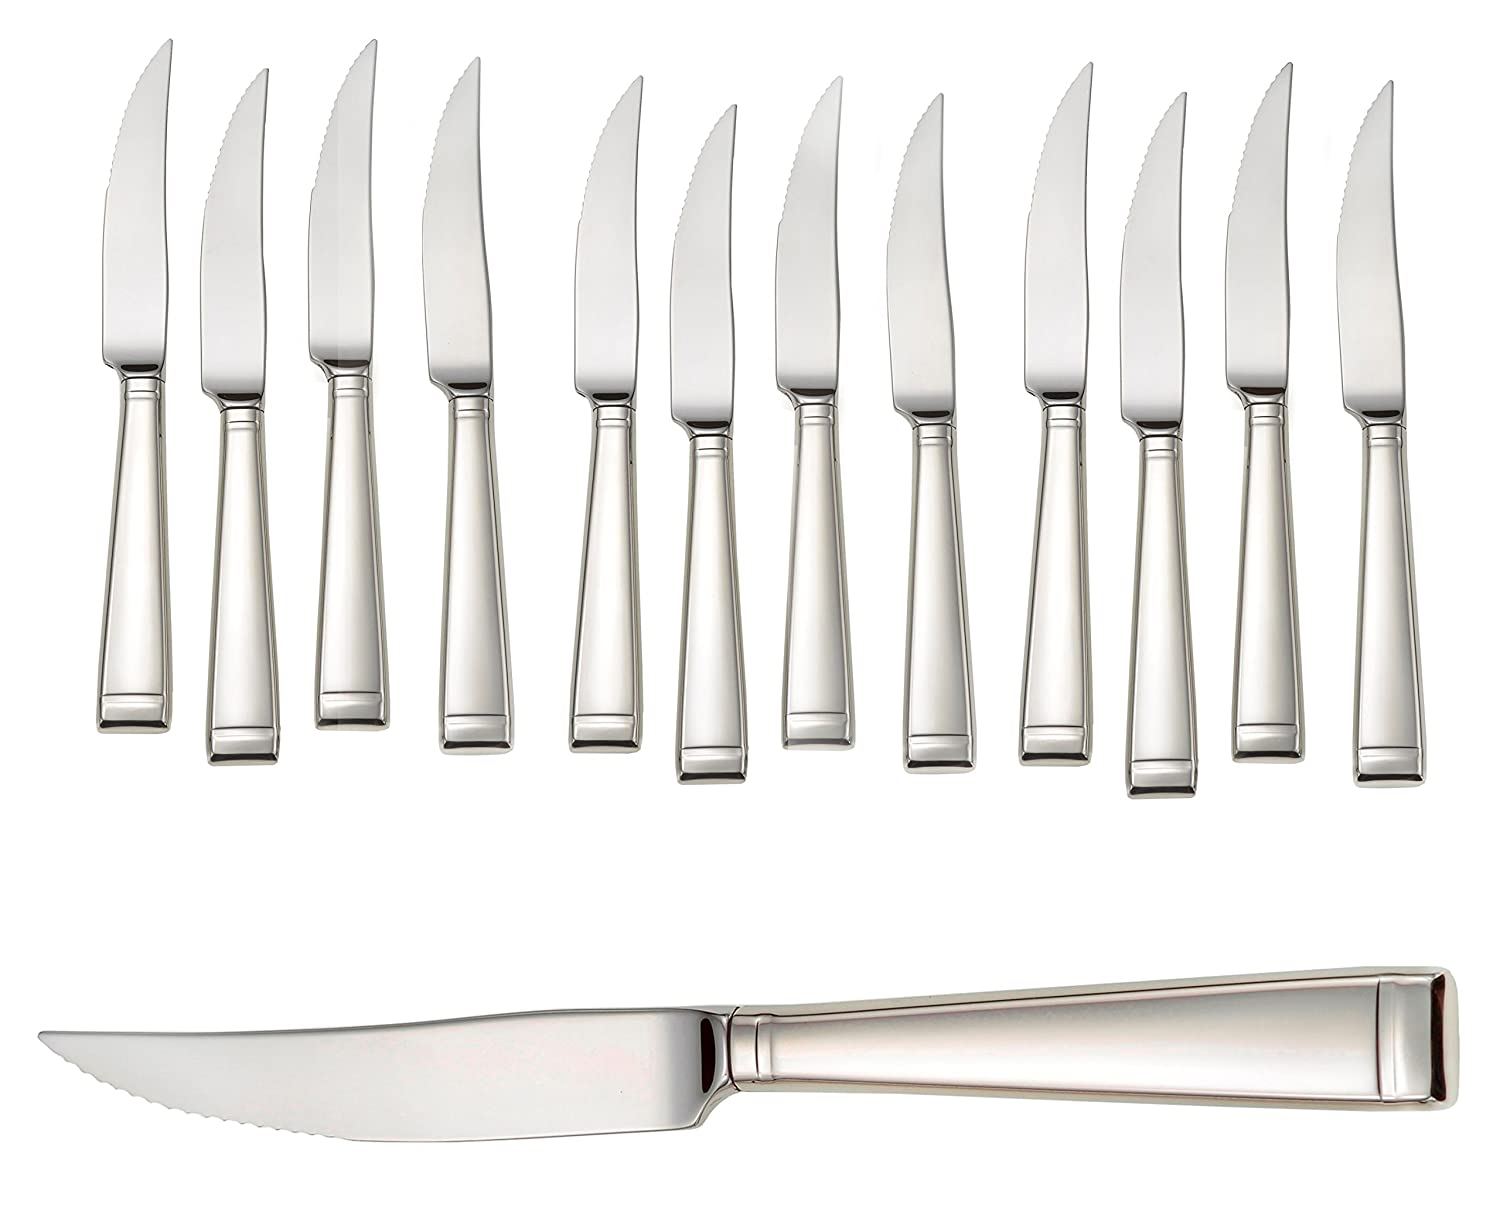 Liberty Tabletop Steak Knife set of 12 Special Offer Made in USA